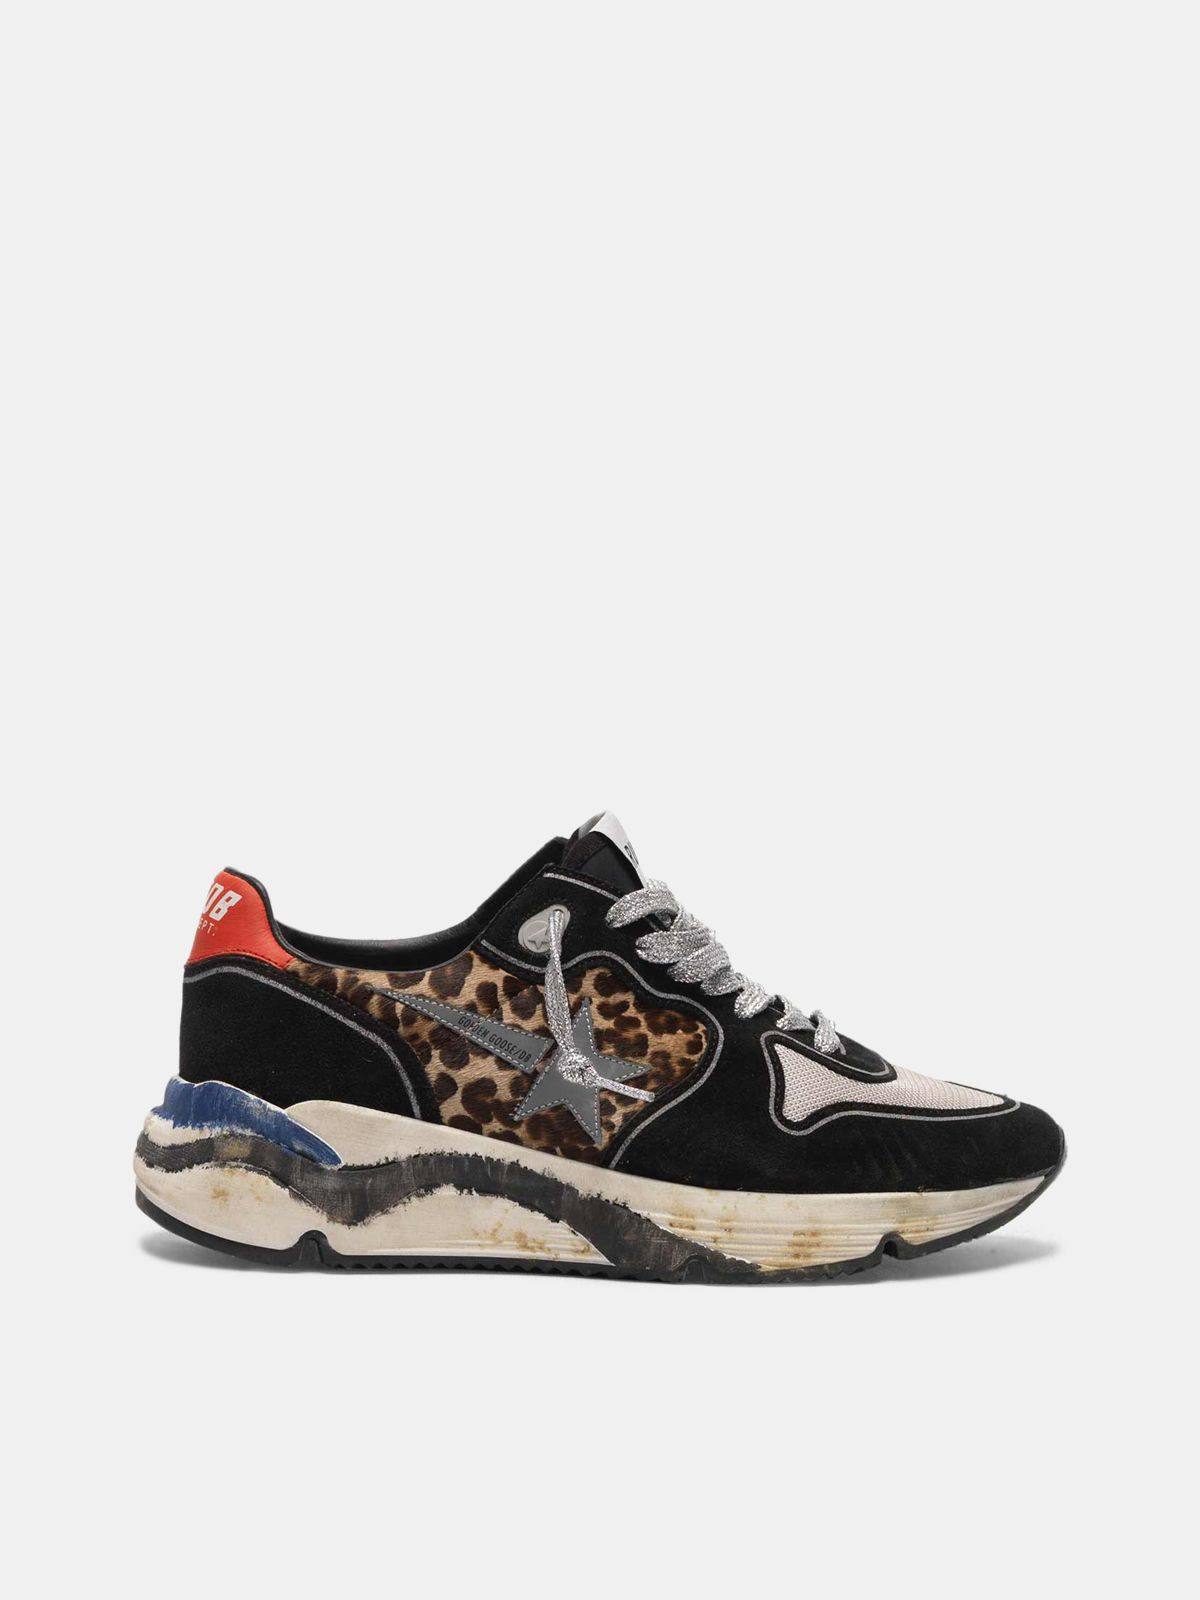 Golden Goose - Running Sole sneakers in leopard-print pony skin and suede in